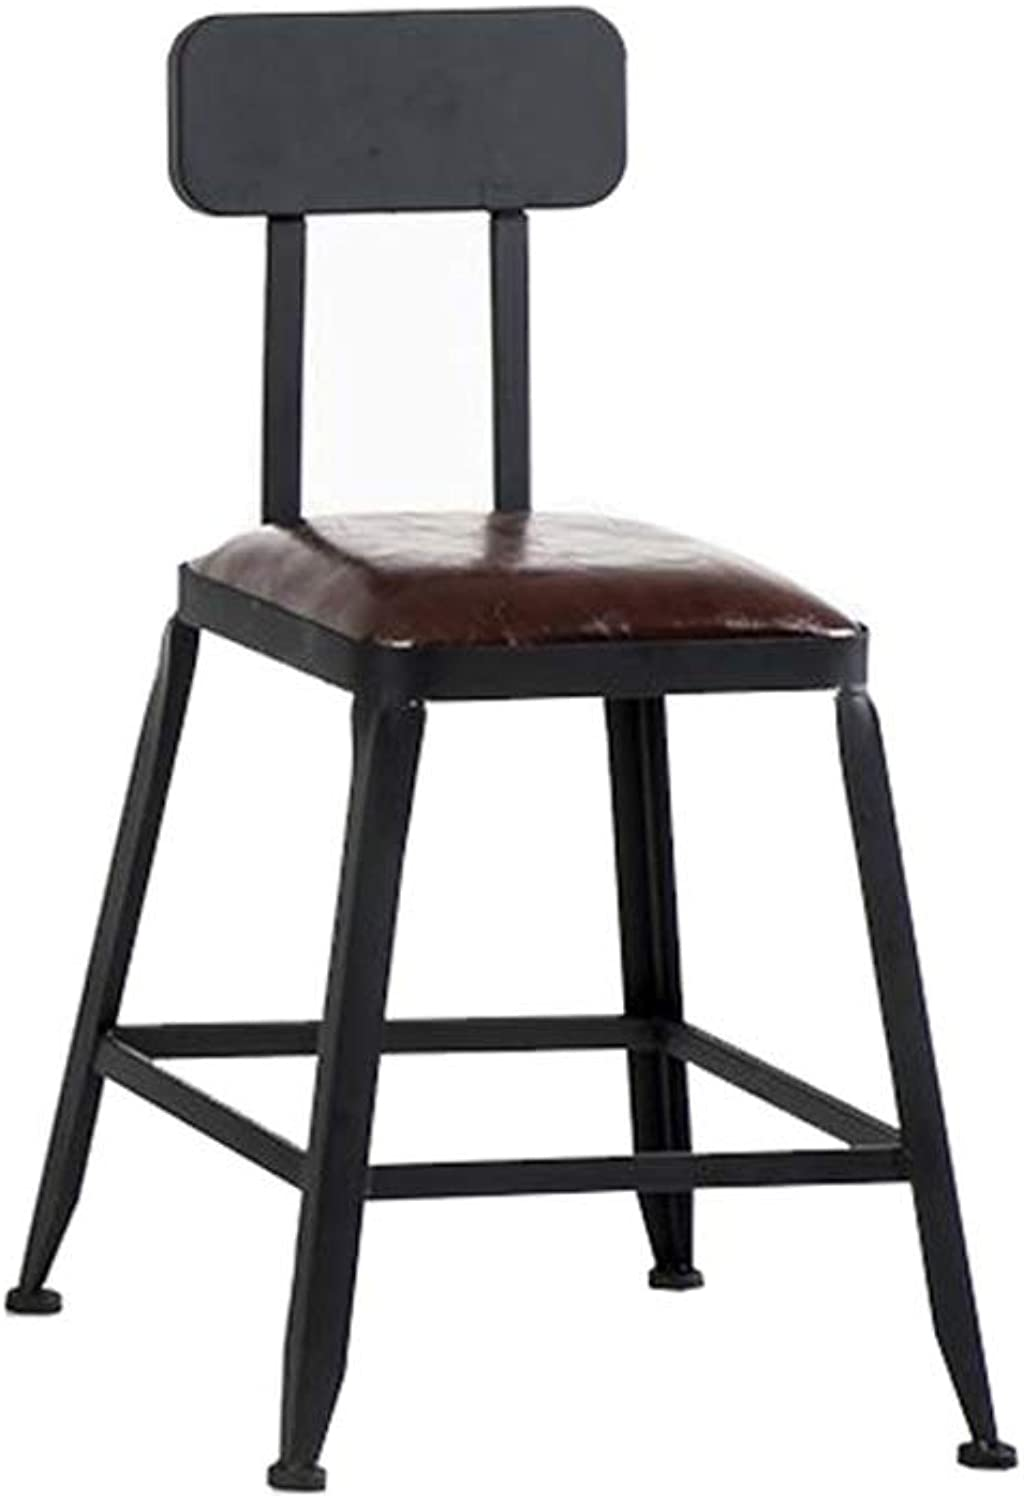 High Stool Barstool Iron Breakfast Dining Stool for Kitchen Bar Counter Home Commercial Chair with Backrest and PU Cushion LOFT Industrial Retro Style (color   Height 45cm)